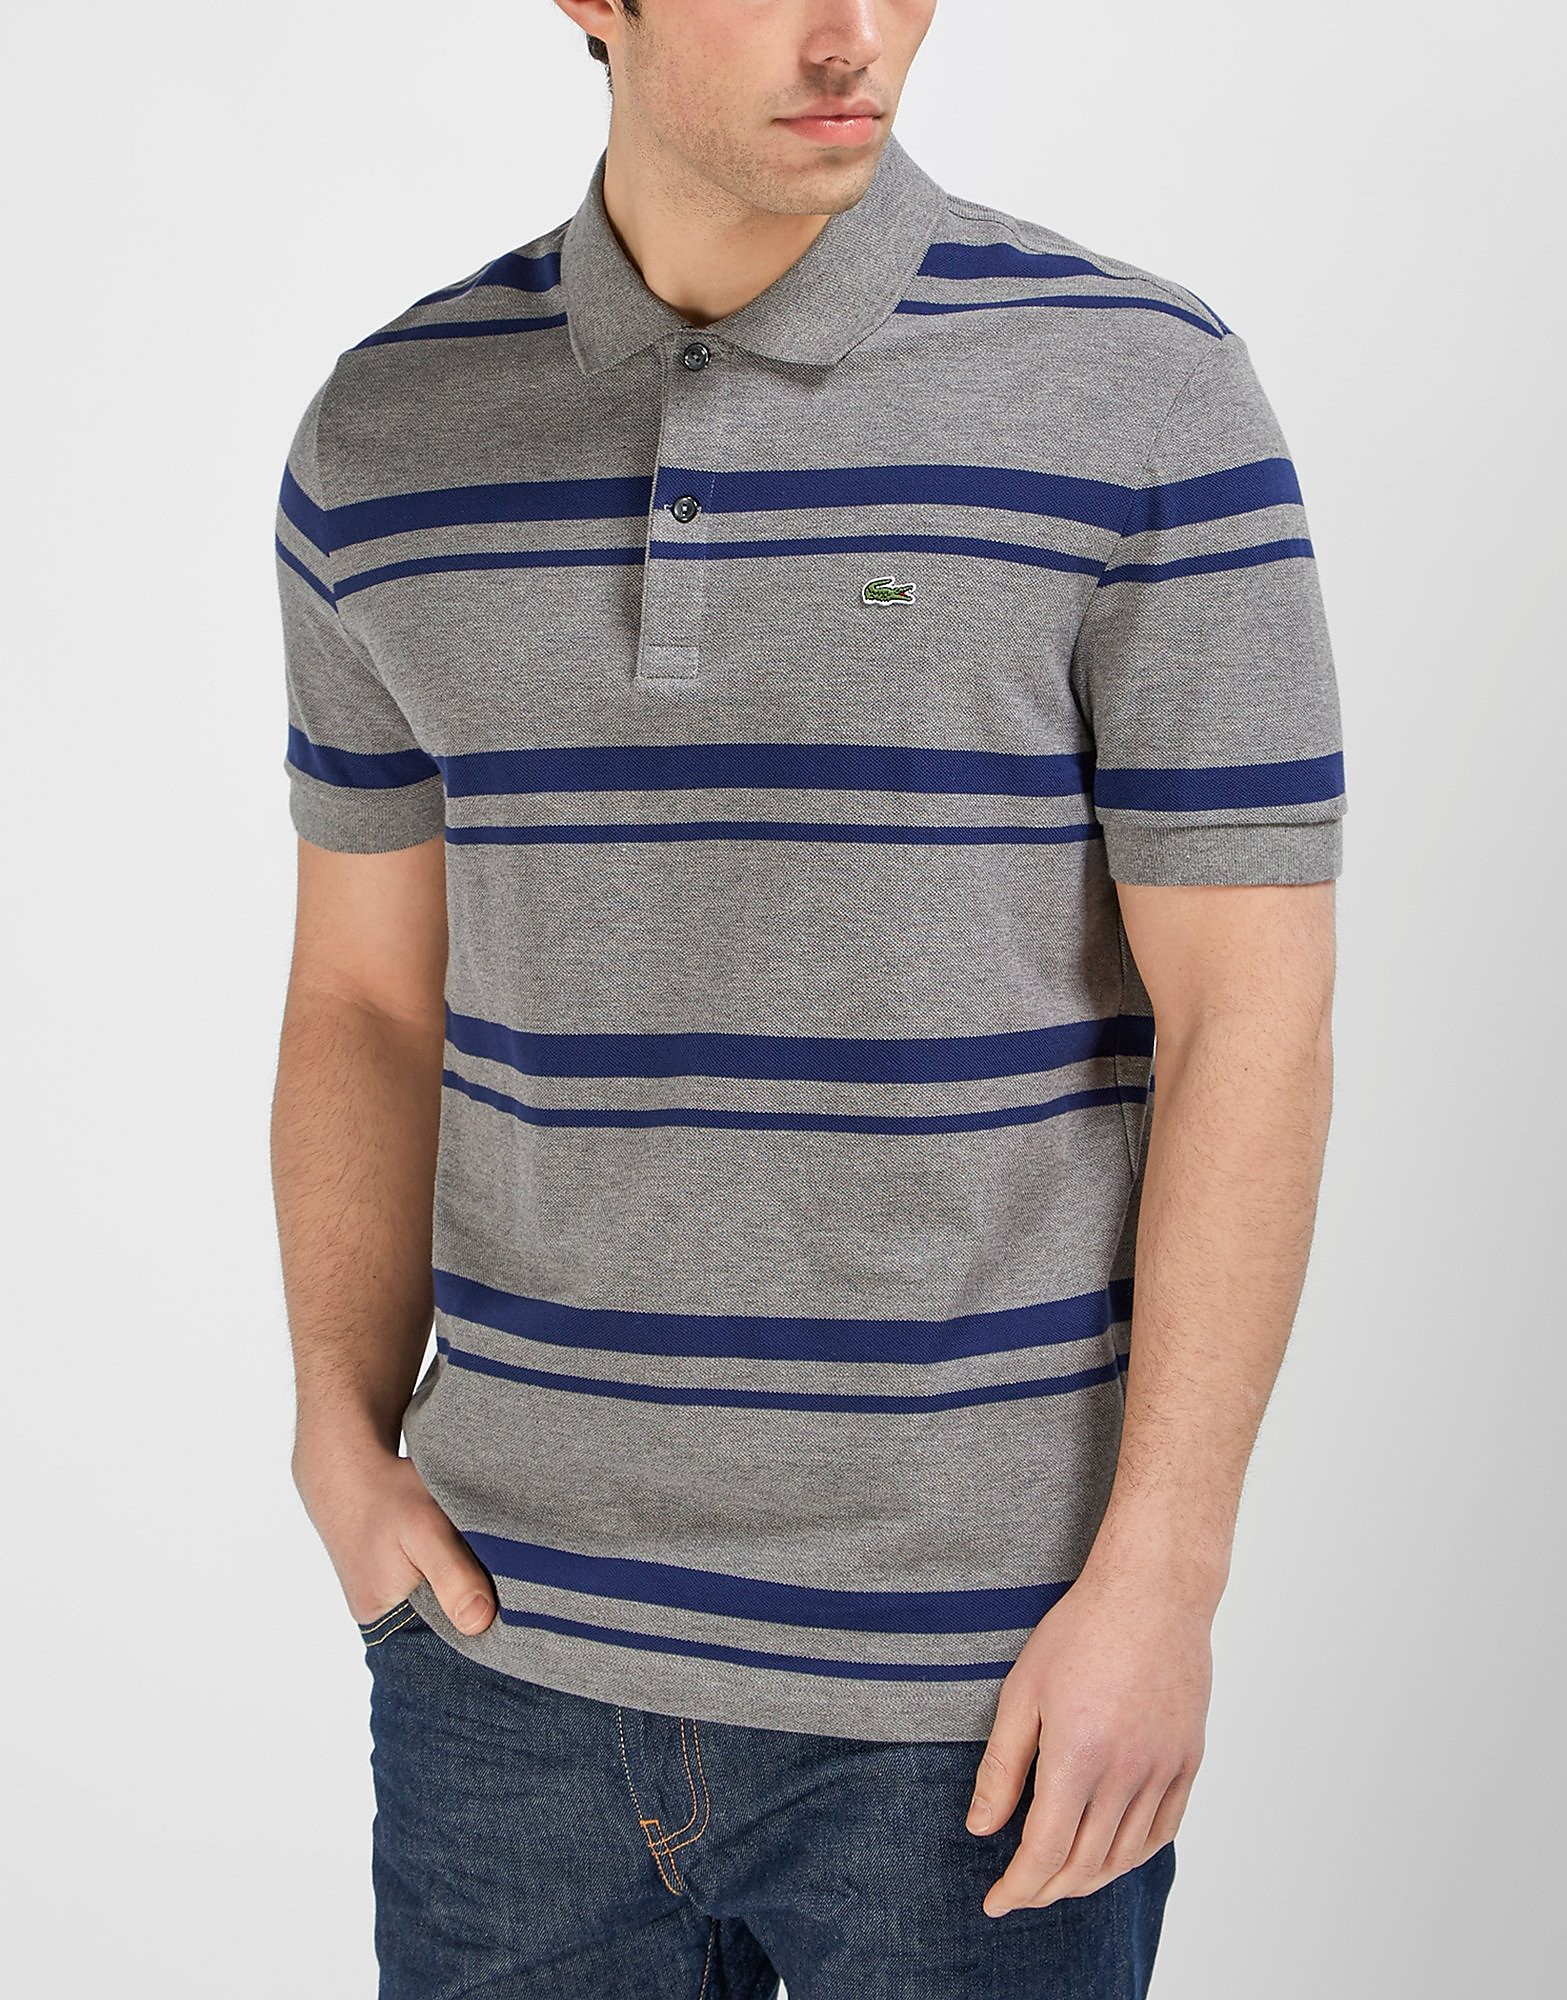 Cheap locaste polo shirts for men women and children for Lacoste stripe pique polo shirt